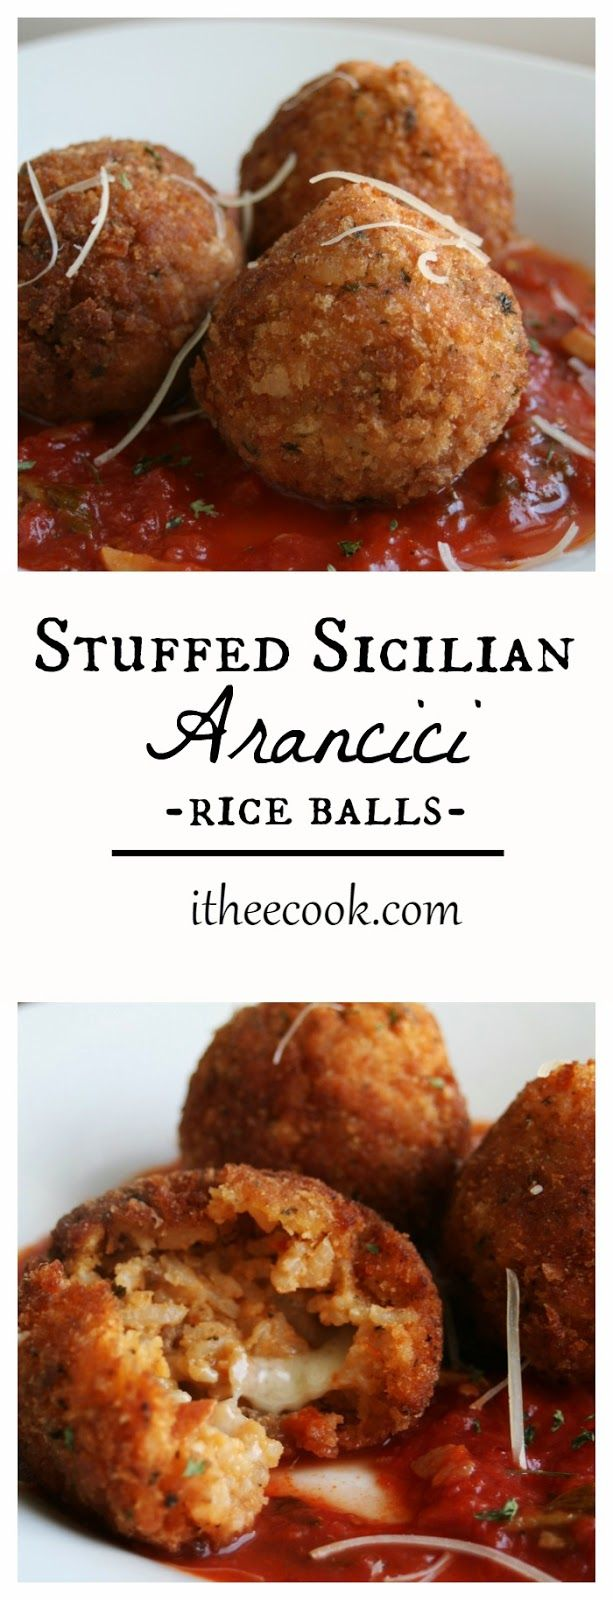 I have always wanted to try these. Maybe today is,the day. I Thee Cook: Stuffed Sicilian Arancici